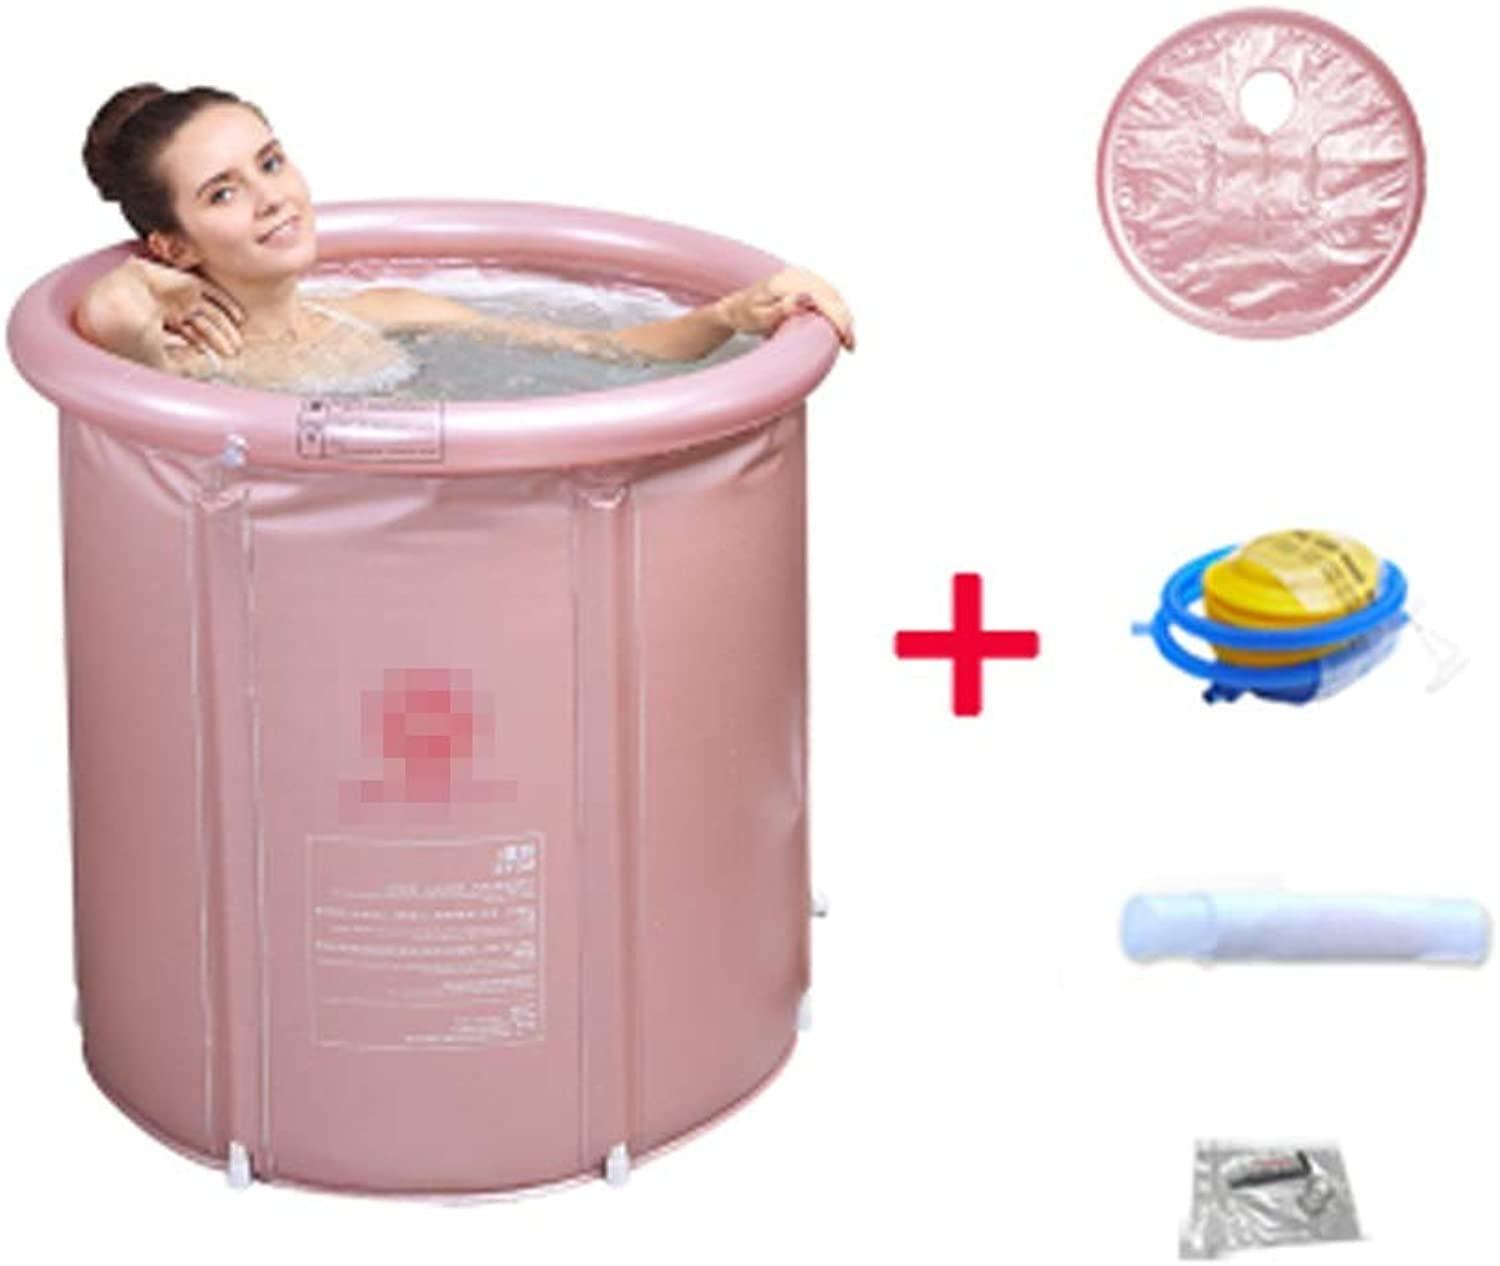 SYFO Adult Inflatable Bathtub Baby Pool Home Folding Plastic Bathtub golden Pink Bathtub (color   PINK, Size   75  80cm)